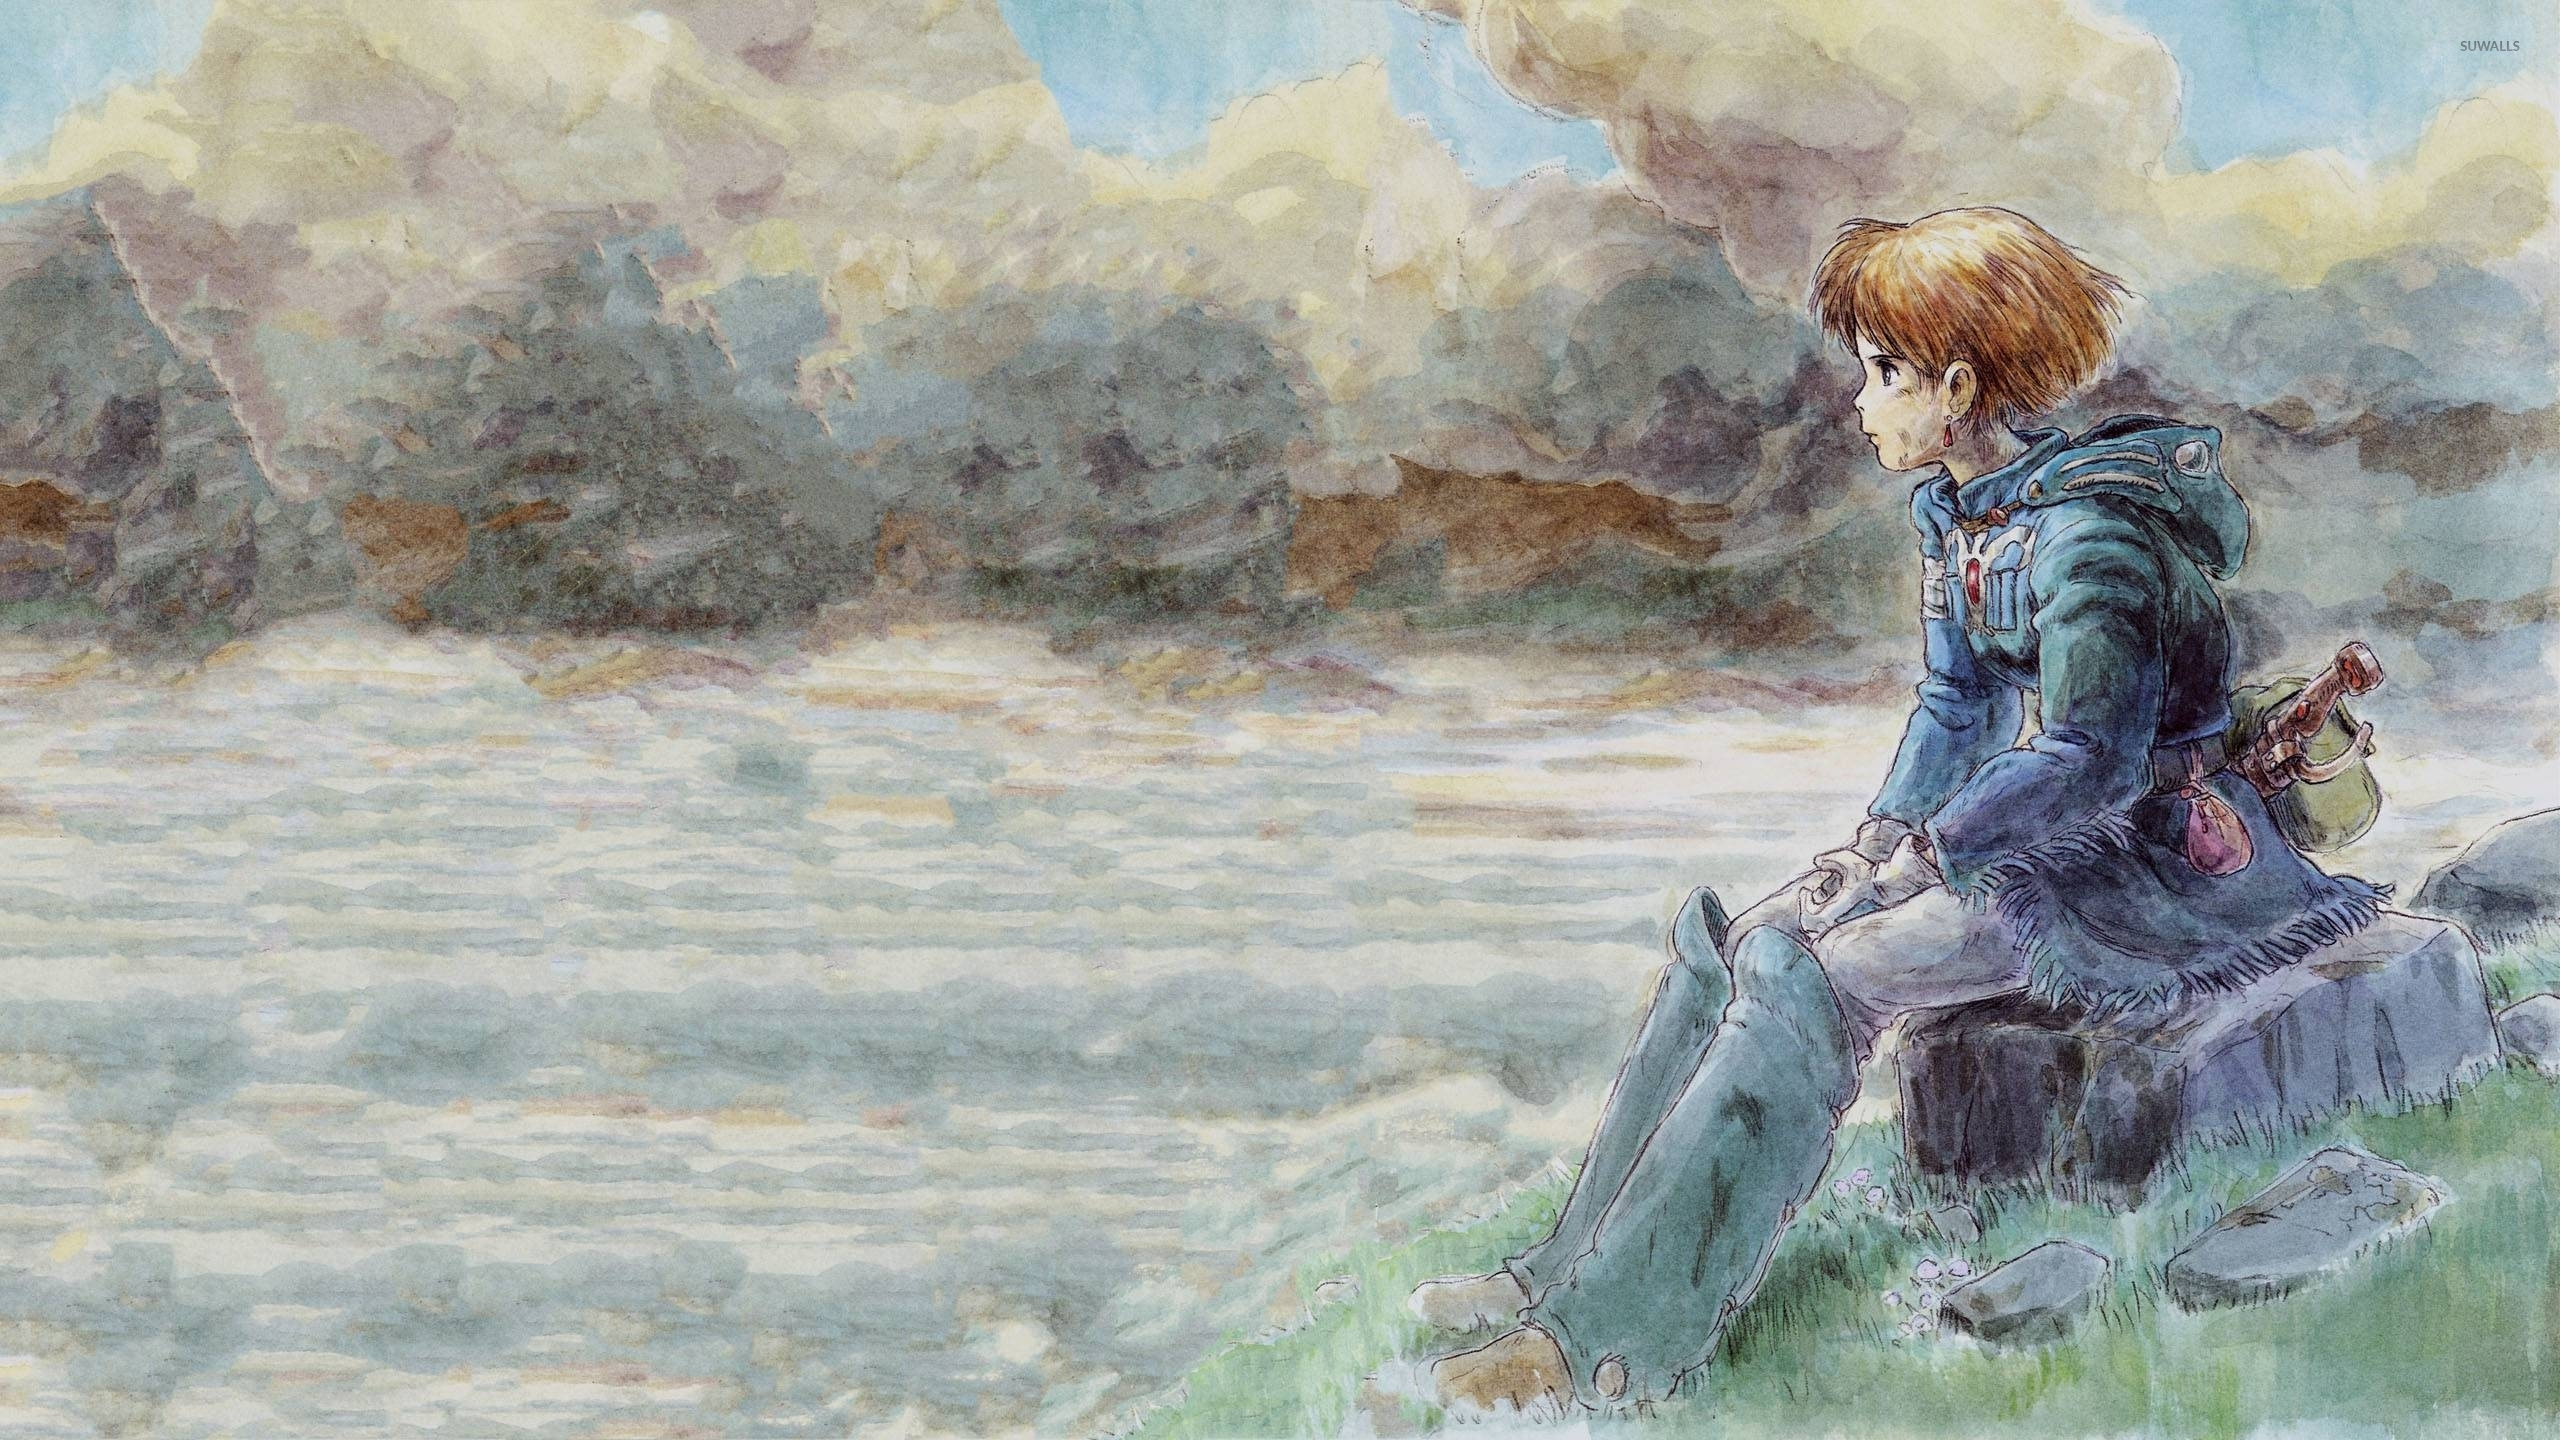 Nausicaa of the Valley of the Wind wallpaper - Anime ...